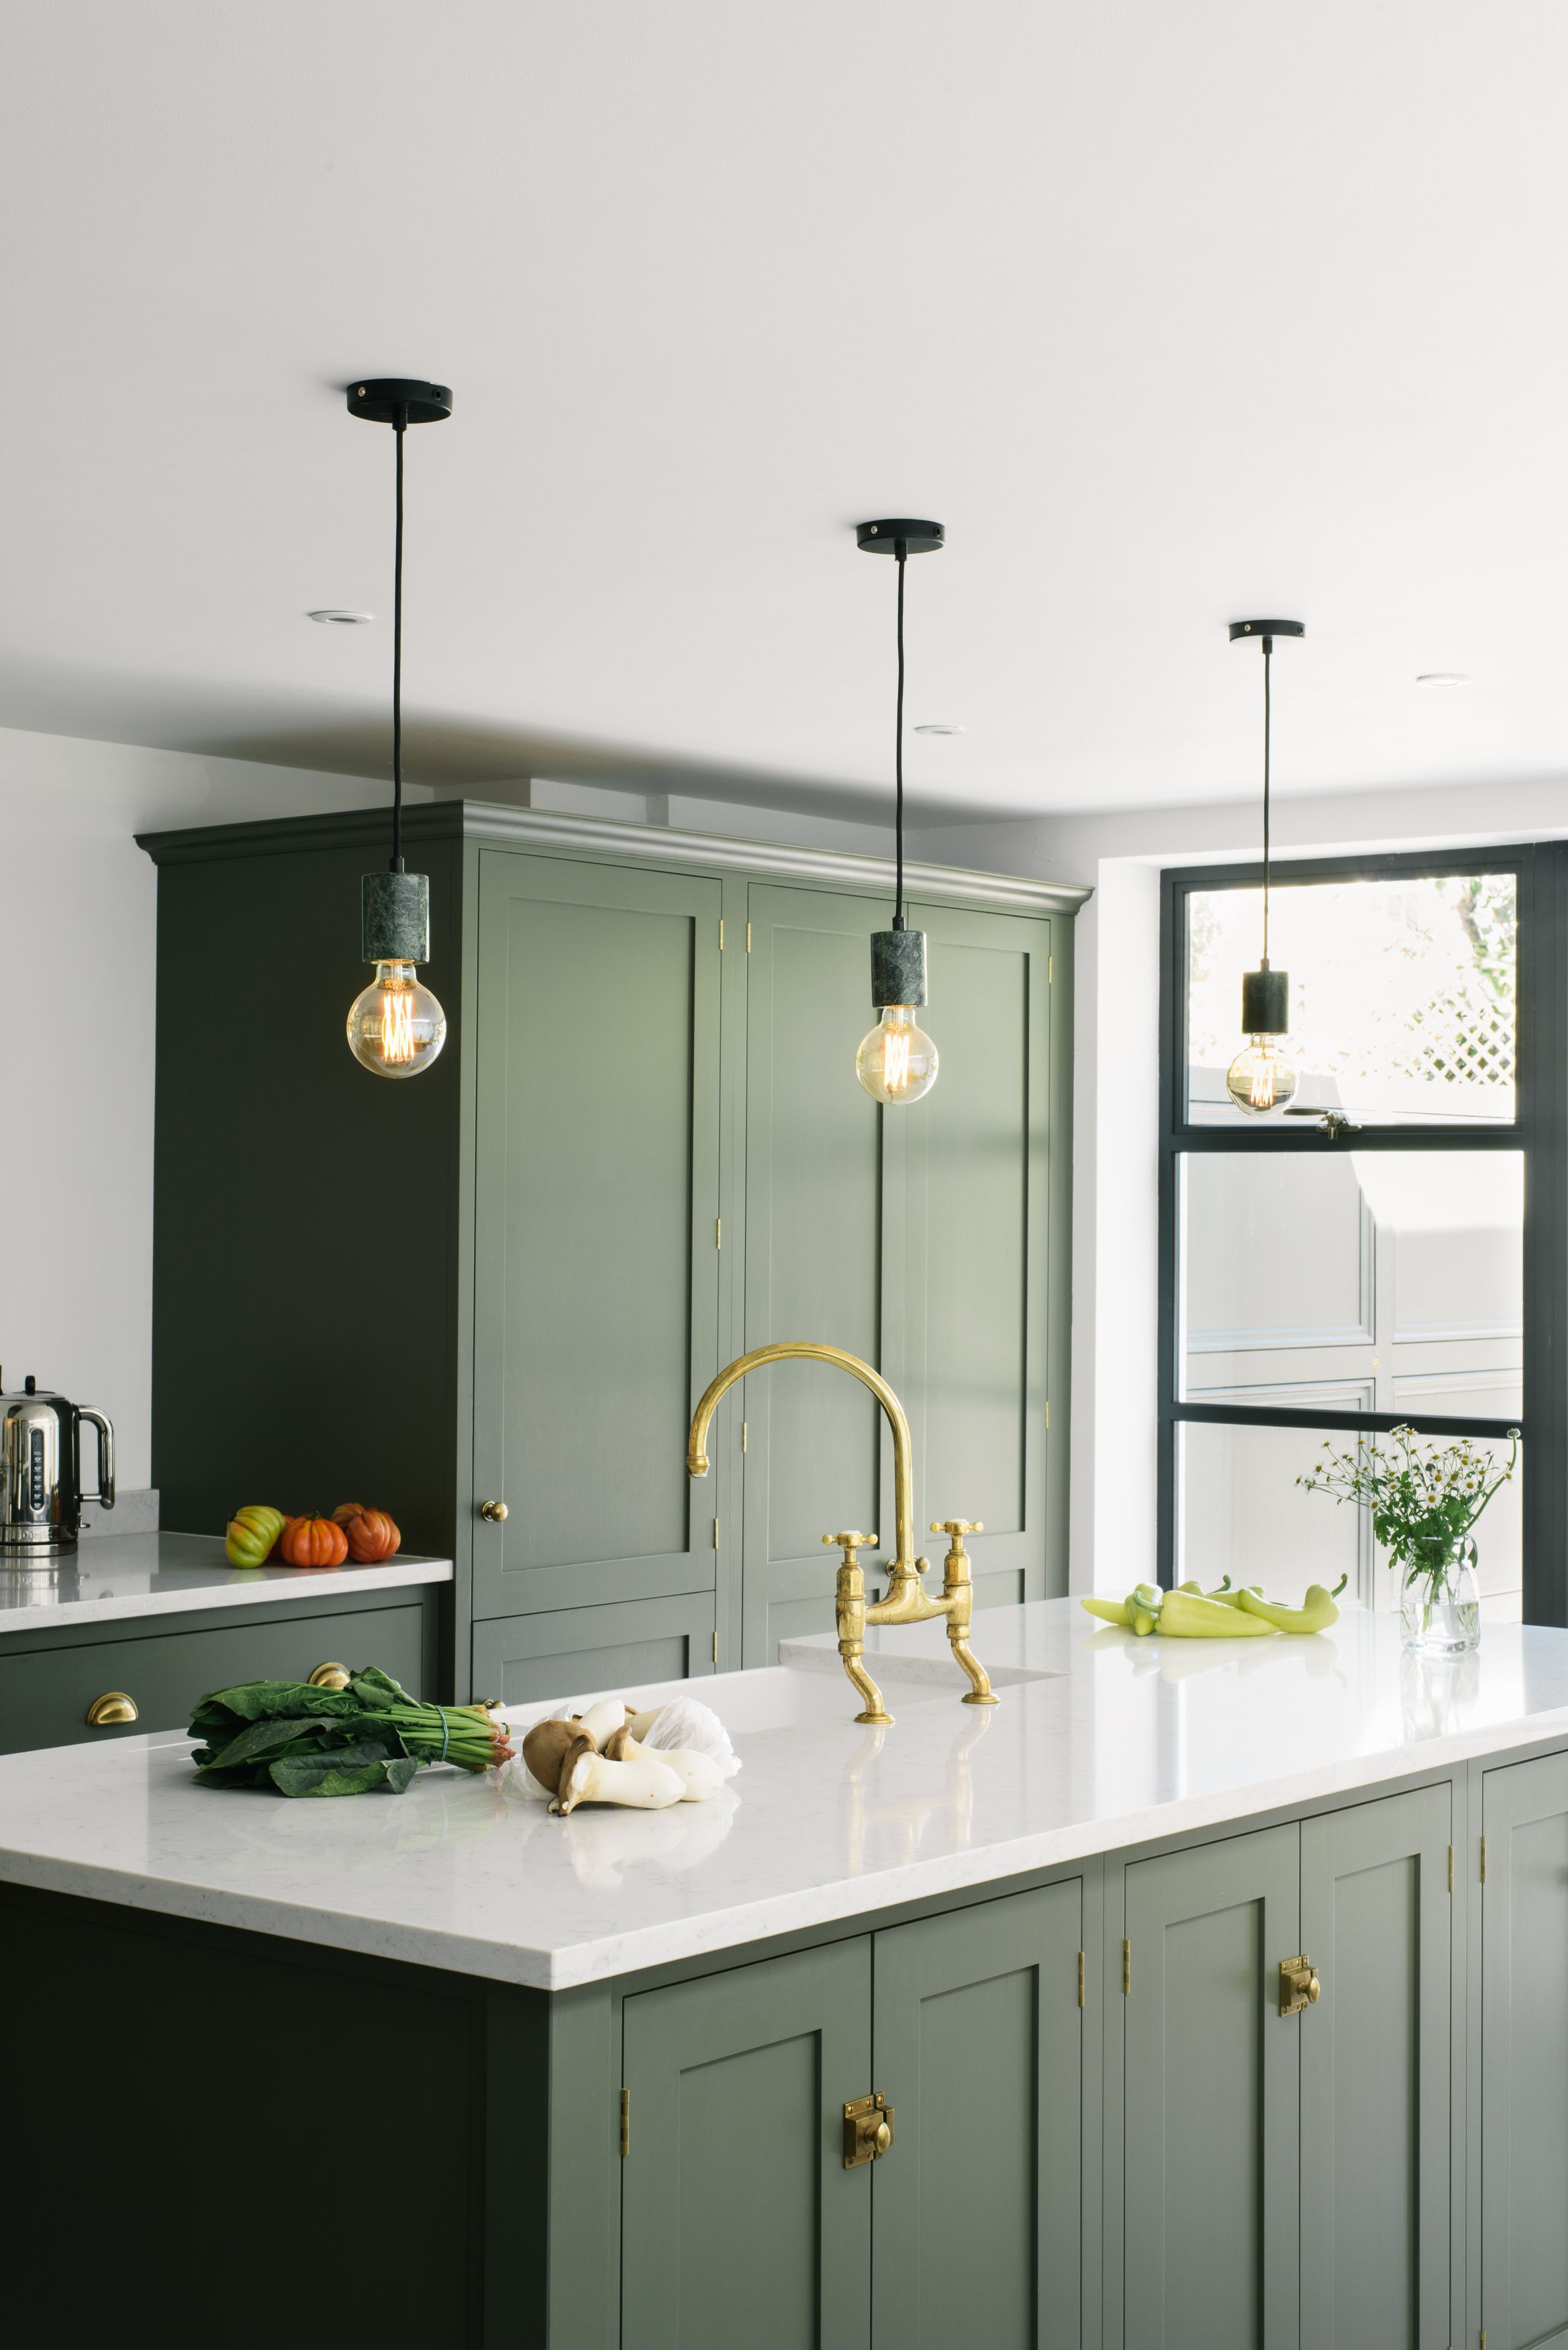 Cabinet Outlet Santa Ana 2021 In 2020 Kitchen Island Design Kitchen Design Dark Green Kitchen